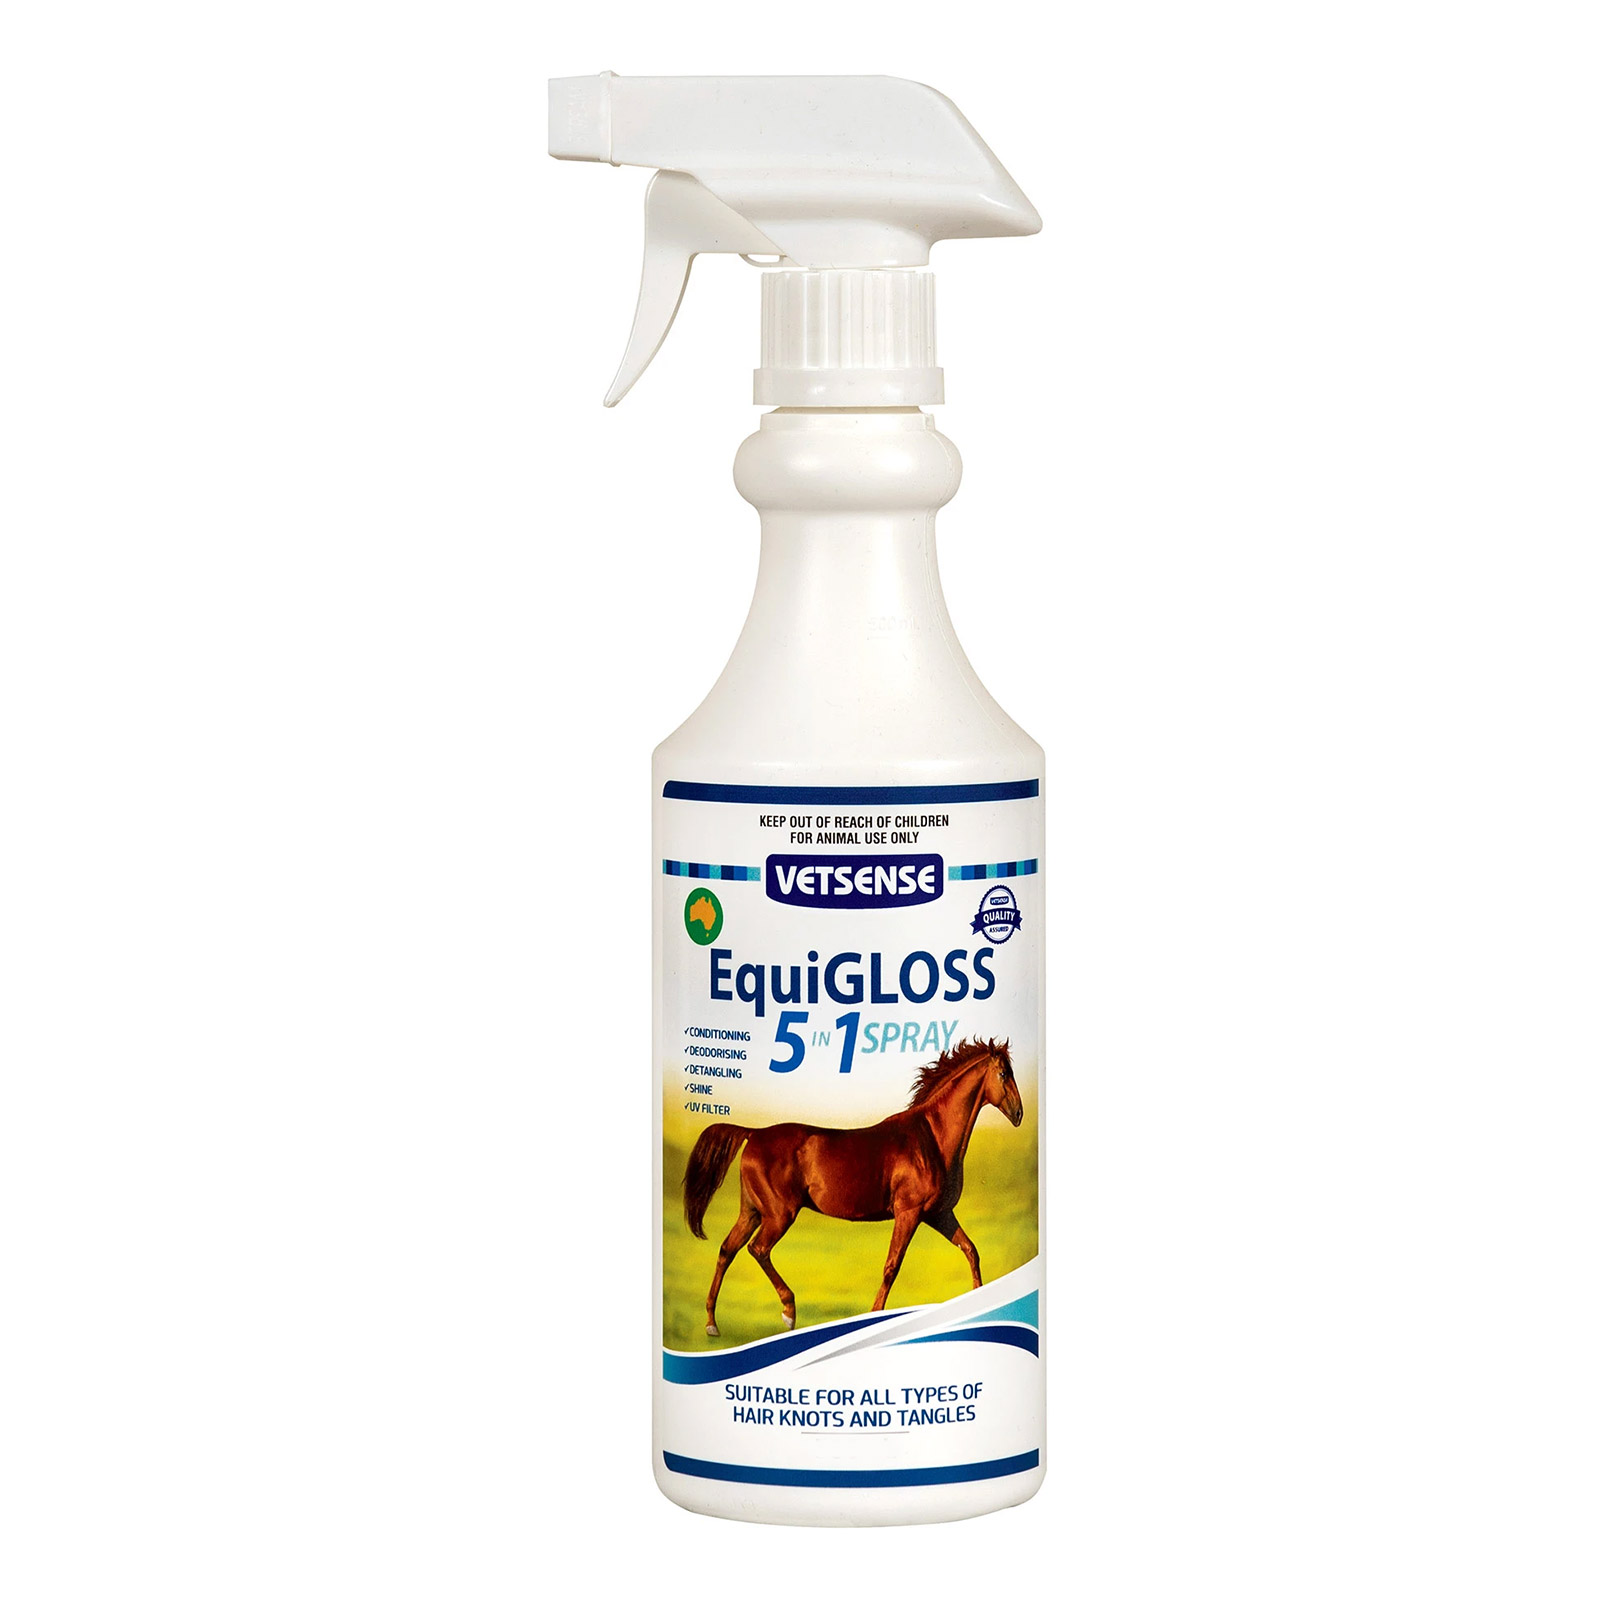 Vetsense Equigloss 5-in-1 Spray